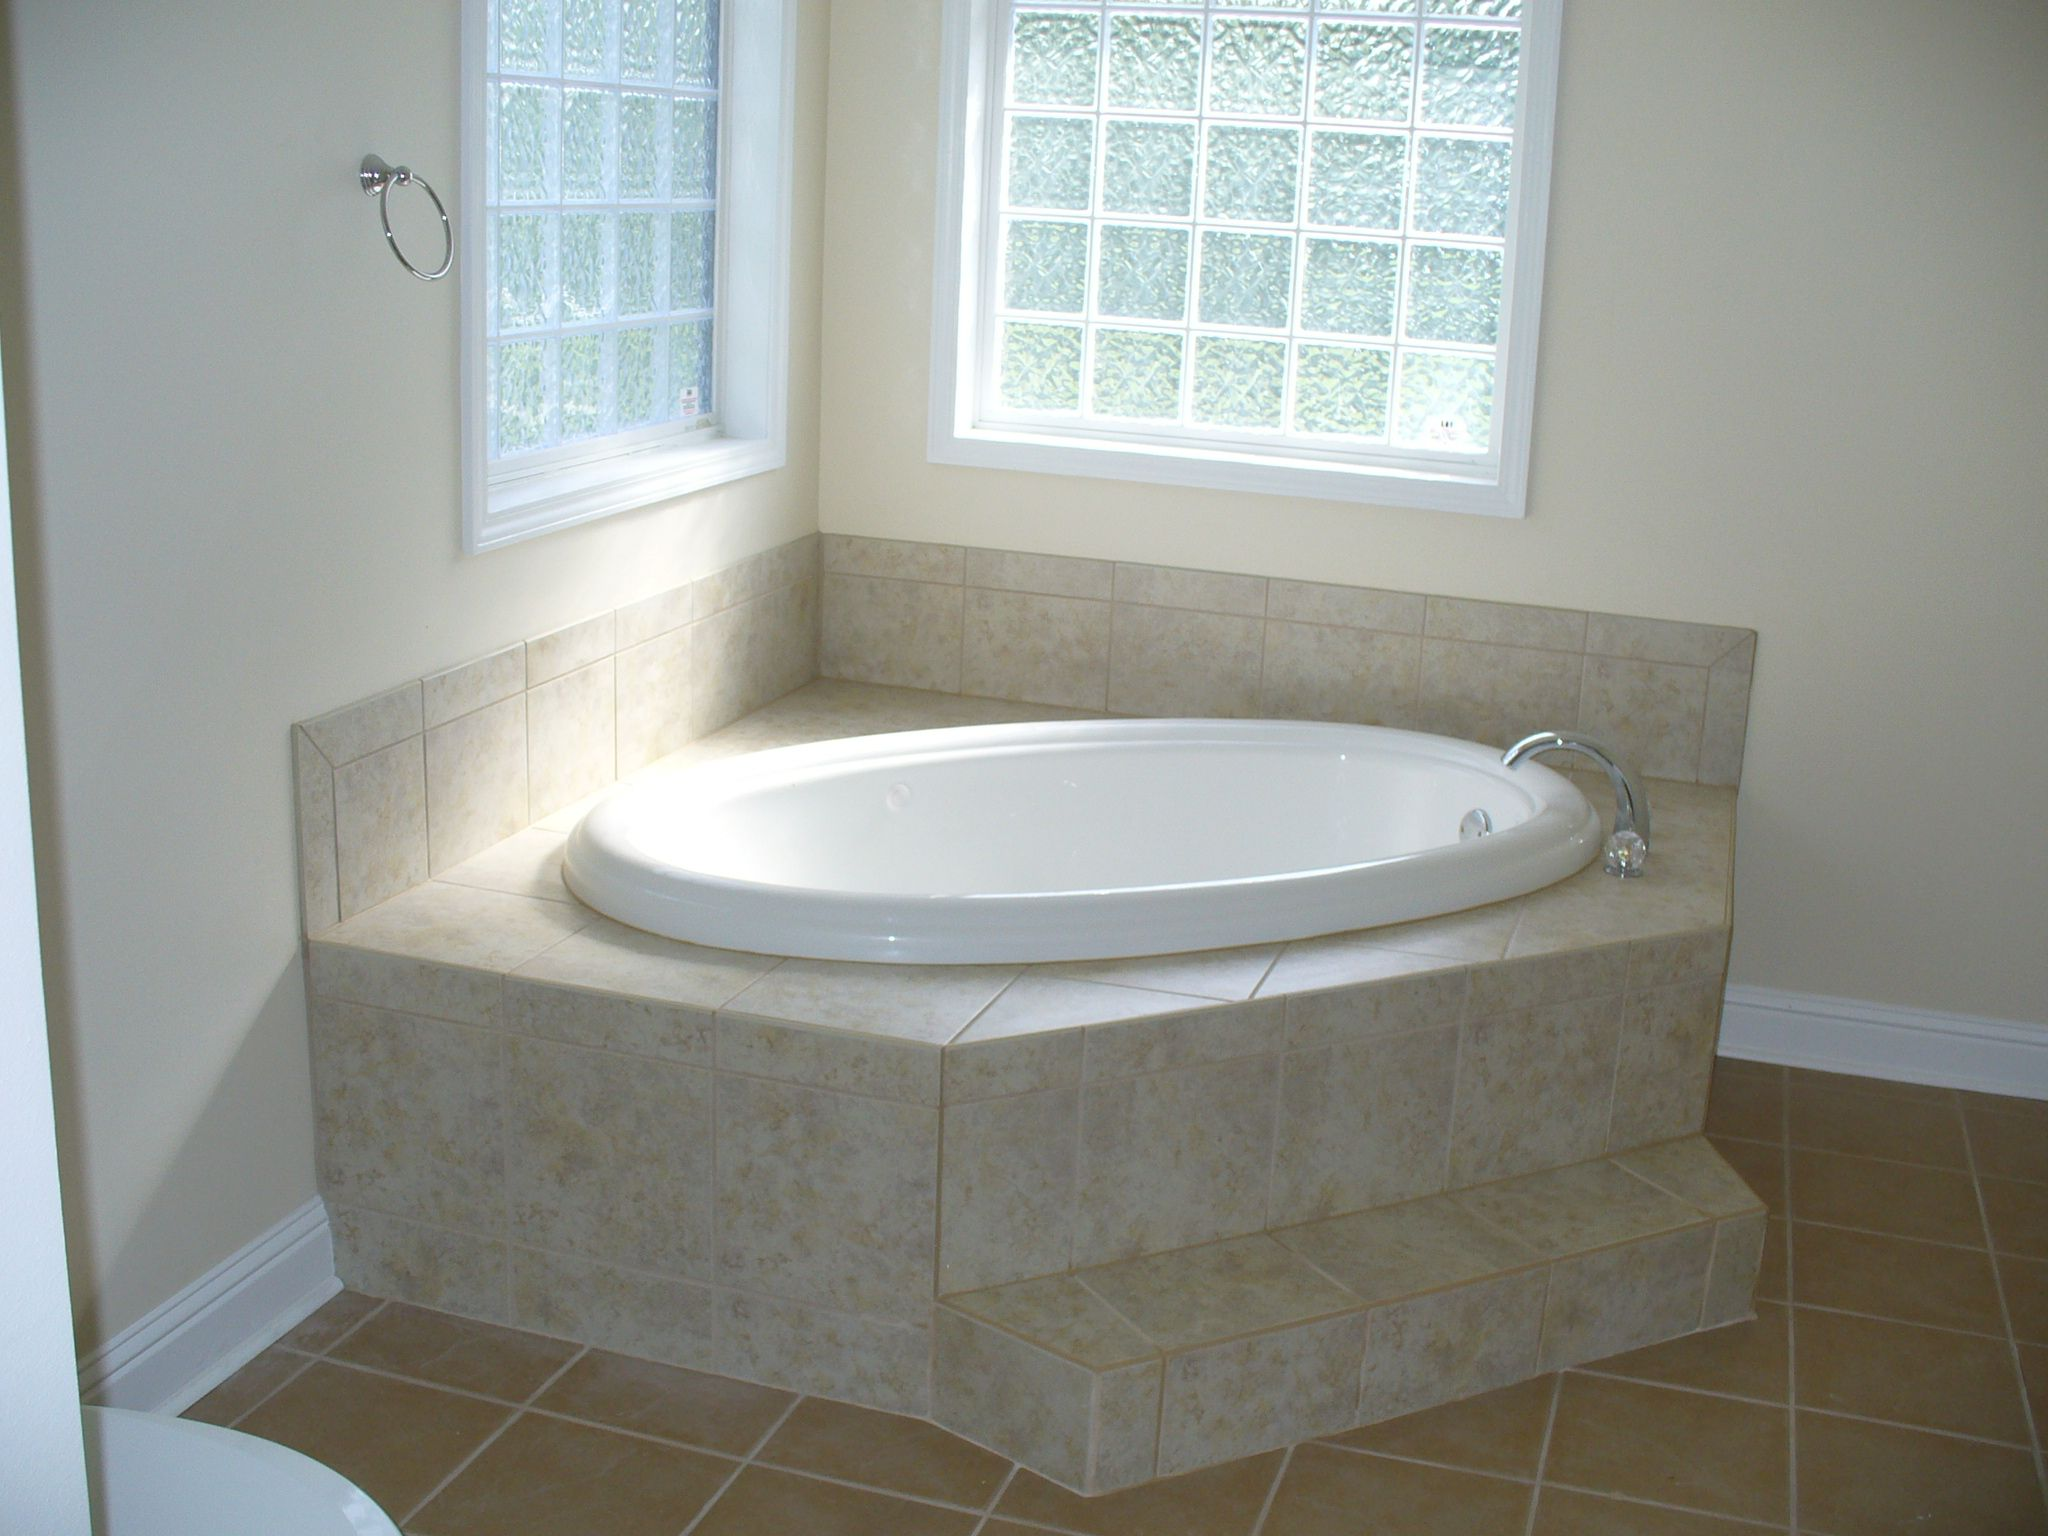 corner garden tub Cleaning Ideas Pinterest Gardens Garden